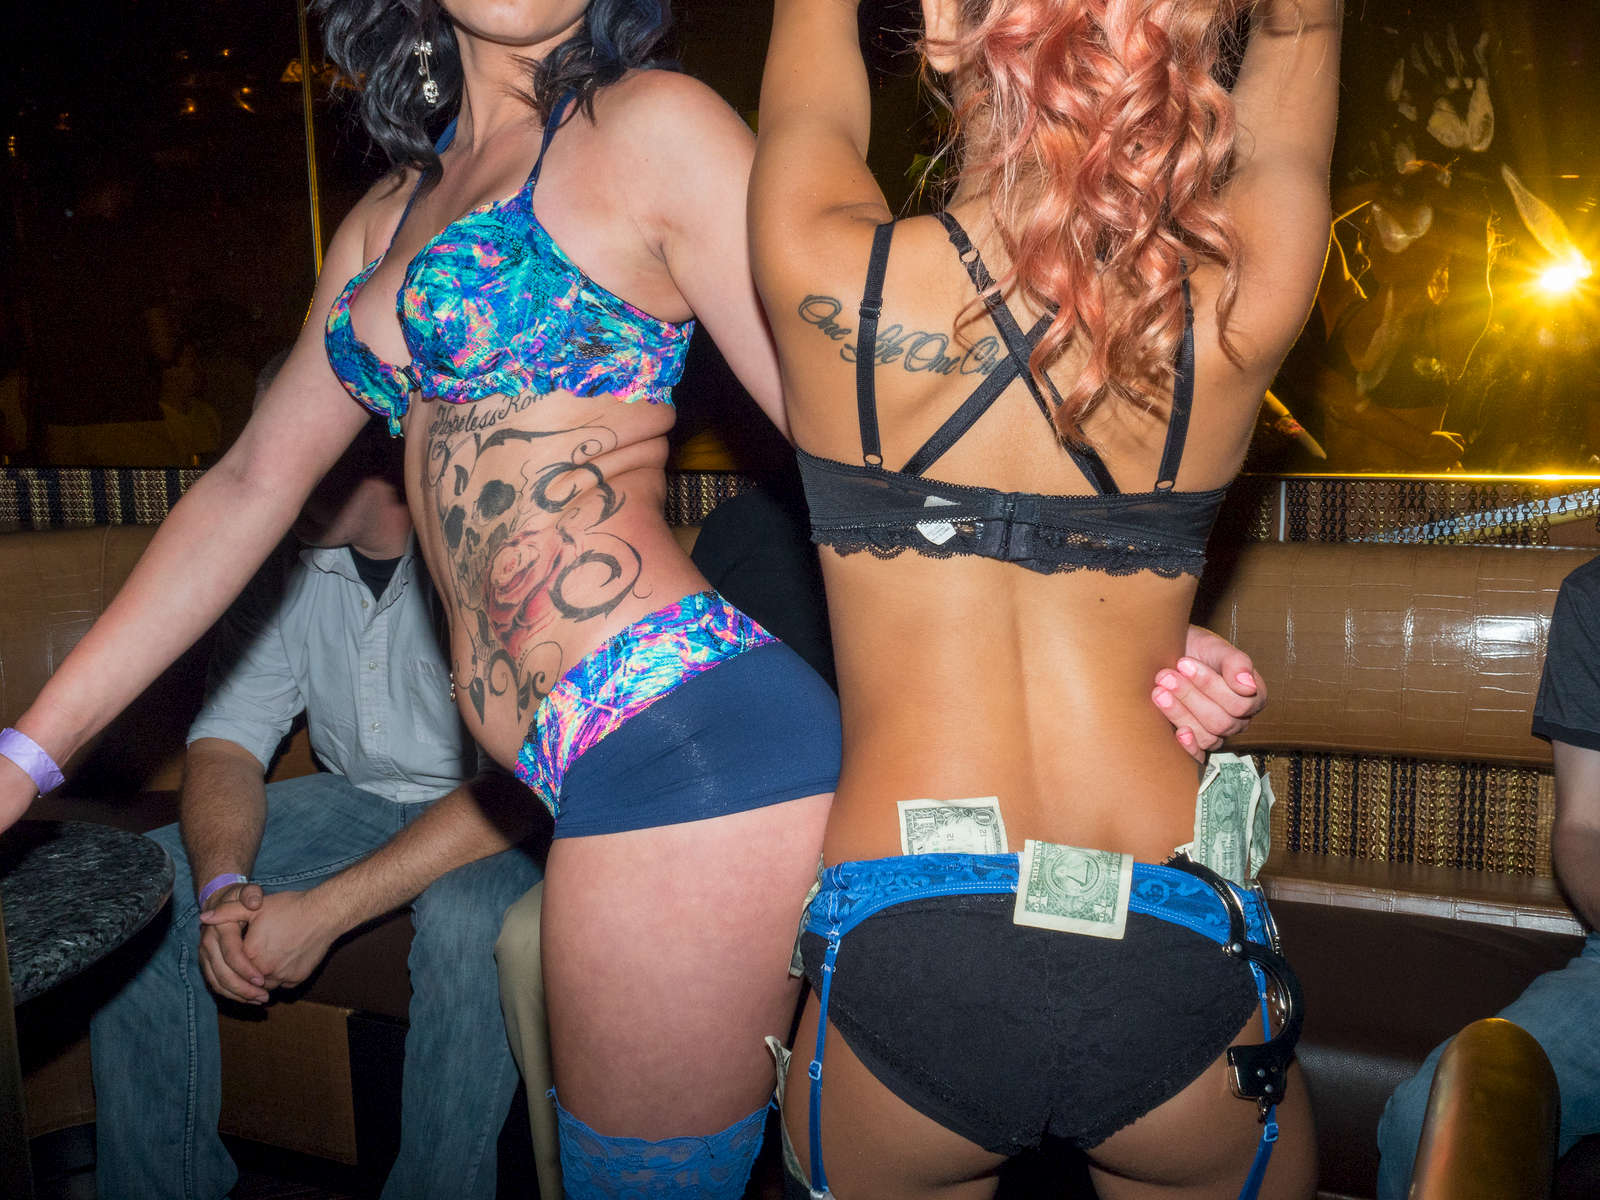 Young guests at a lingerie theme night hosted at Thrive nightclub located in the Crowne Plaza hotel on Elm street, downtown Dallas.Dallas is a major city in Texas and is the largest urban center of the fourth most populous metropolitan area in the United States. The city ranks ninth in the U.S. and third in Texas after Houston and San Antonio. The city's prominence arose from its historical importance as a center for the oil and cotton industries, and its position along numerous railroad lines.For two weeks in the summer of 2015, photographer Peter Dench visited Dallas to document the metroplex in his epic reportage, DENCH DOES DALLAS.Photographed using an Olympus E-M5 Mark II©Peter Dench/Getty Images Reportage